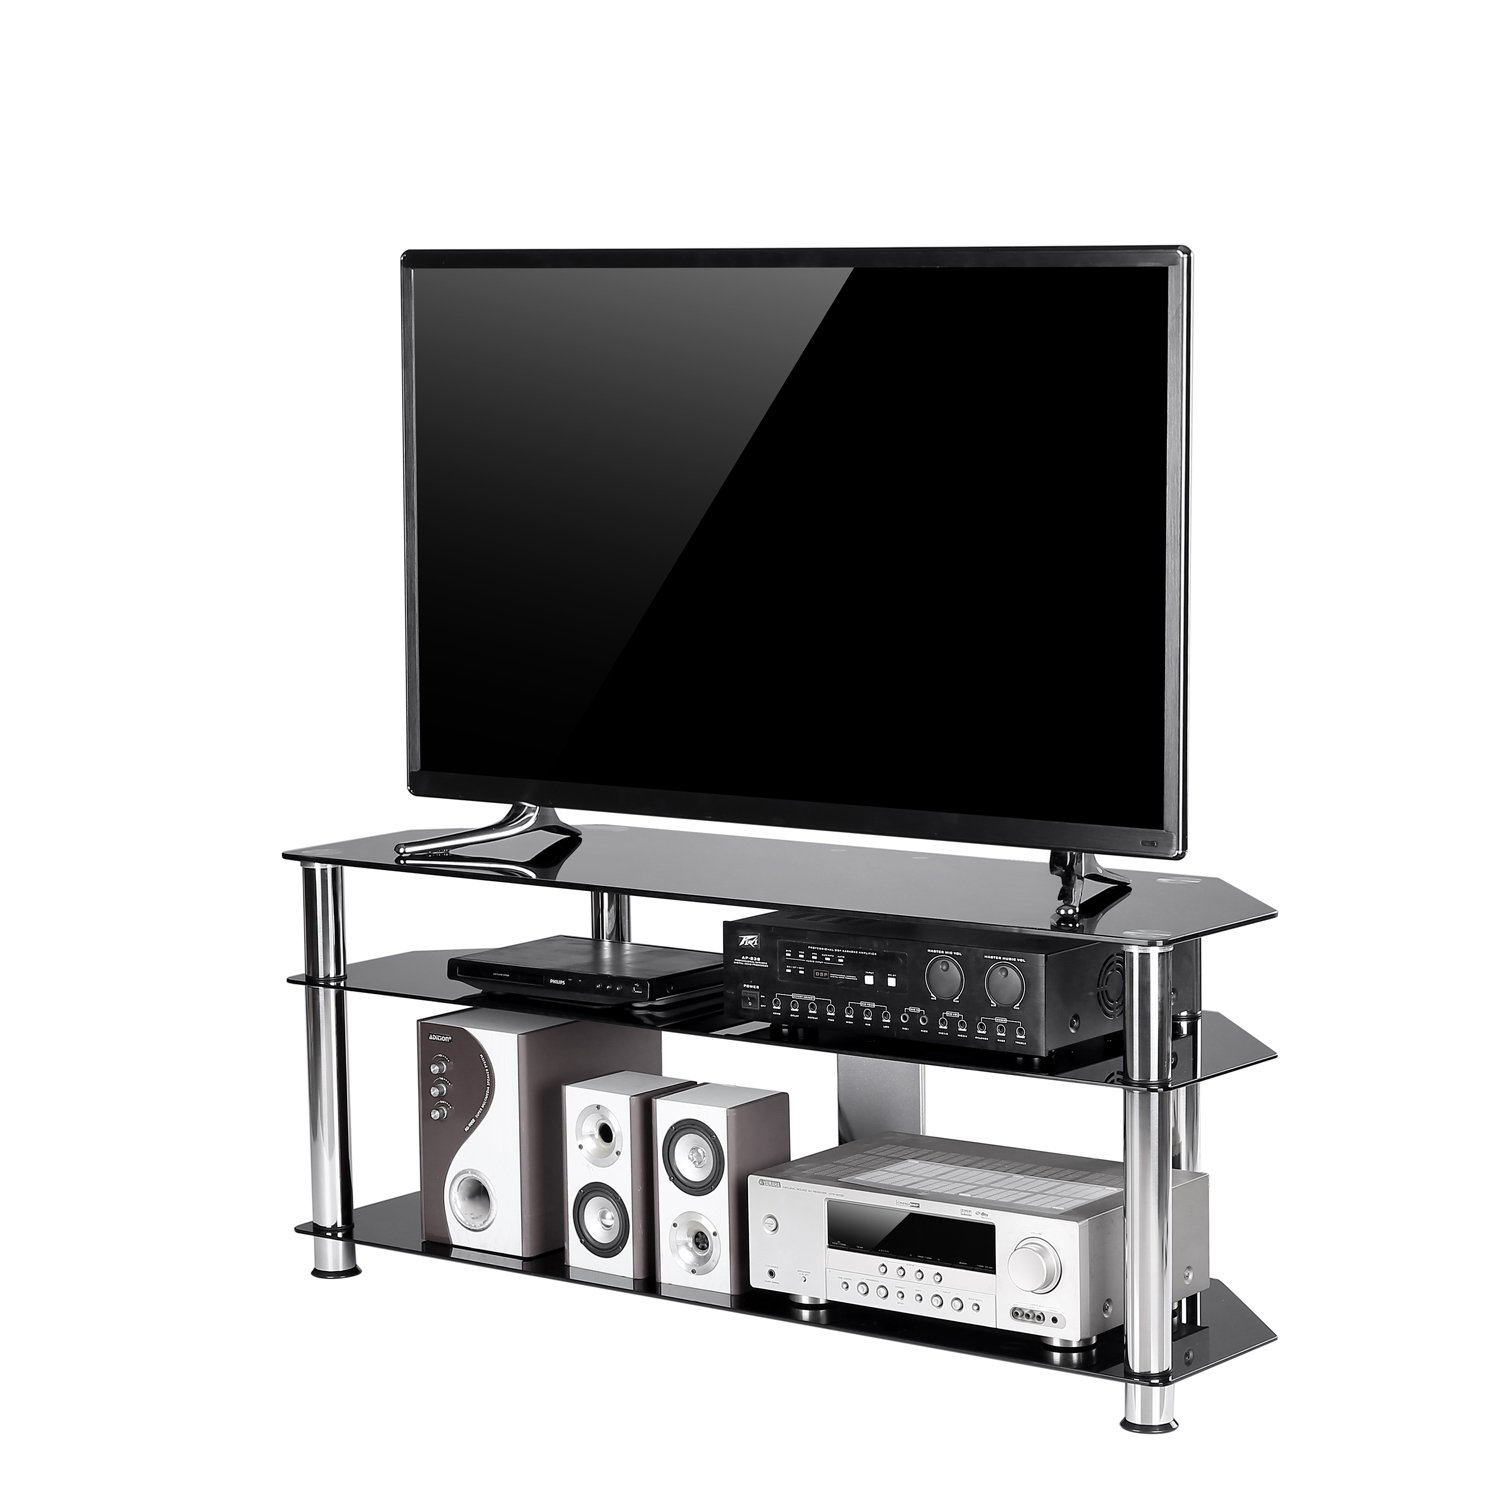 Tavr Black Tempered Glass Corner Tv Stand Cable Management Suit For